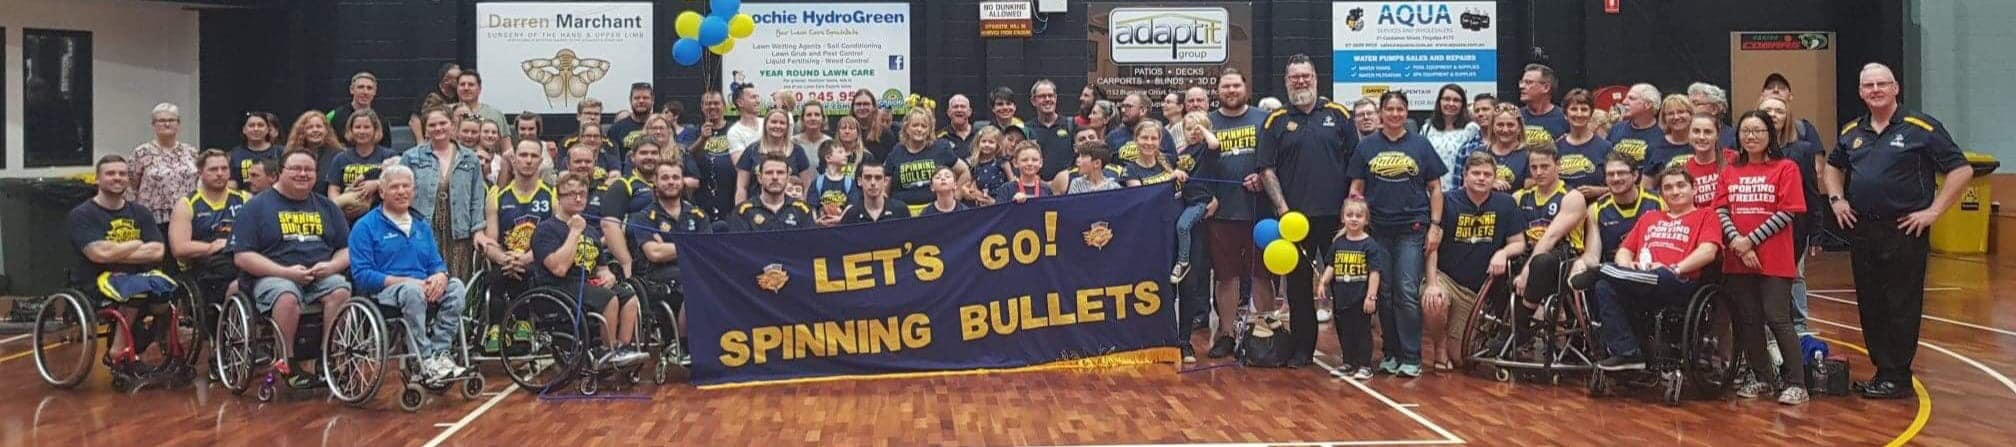 The Queensland Spinning Bullets – NWBL Silver Medalists for 2019